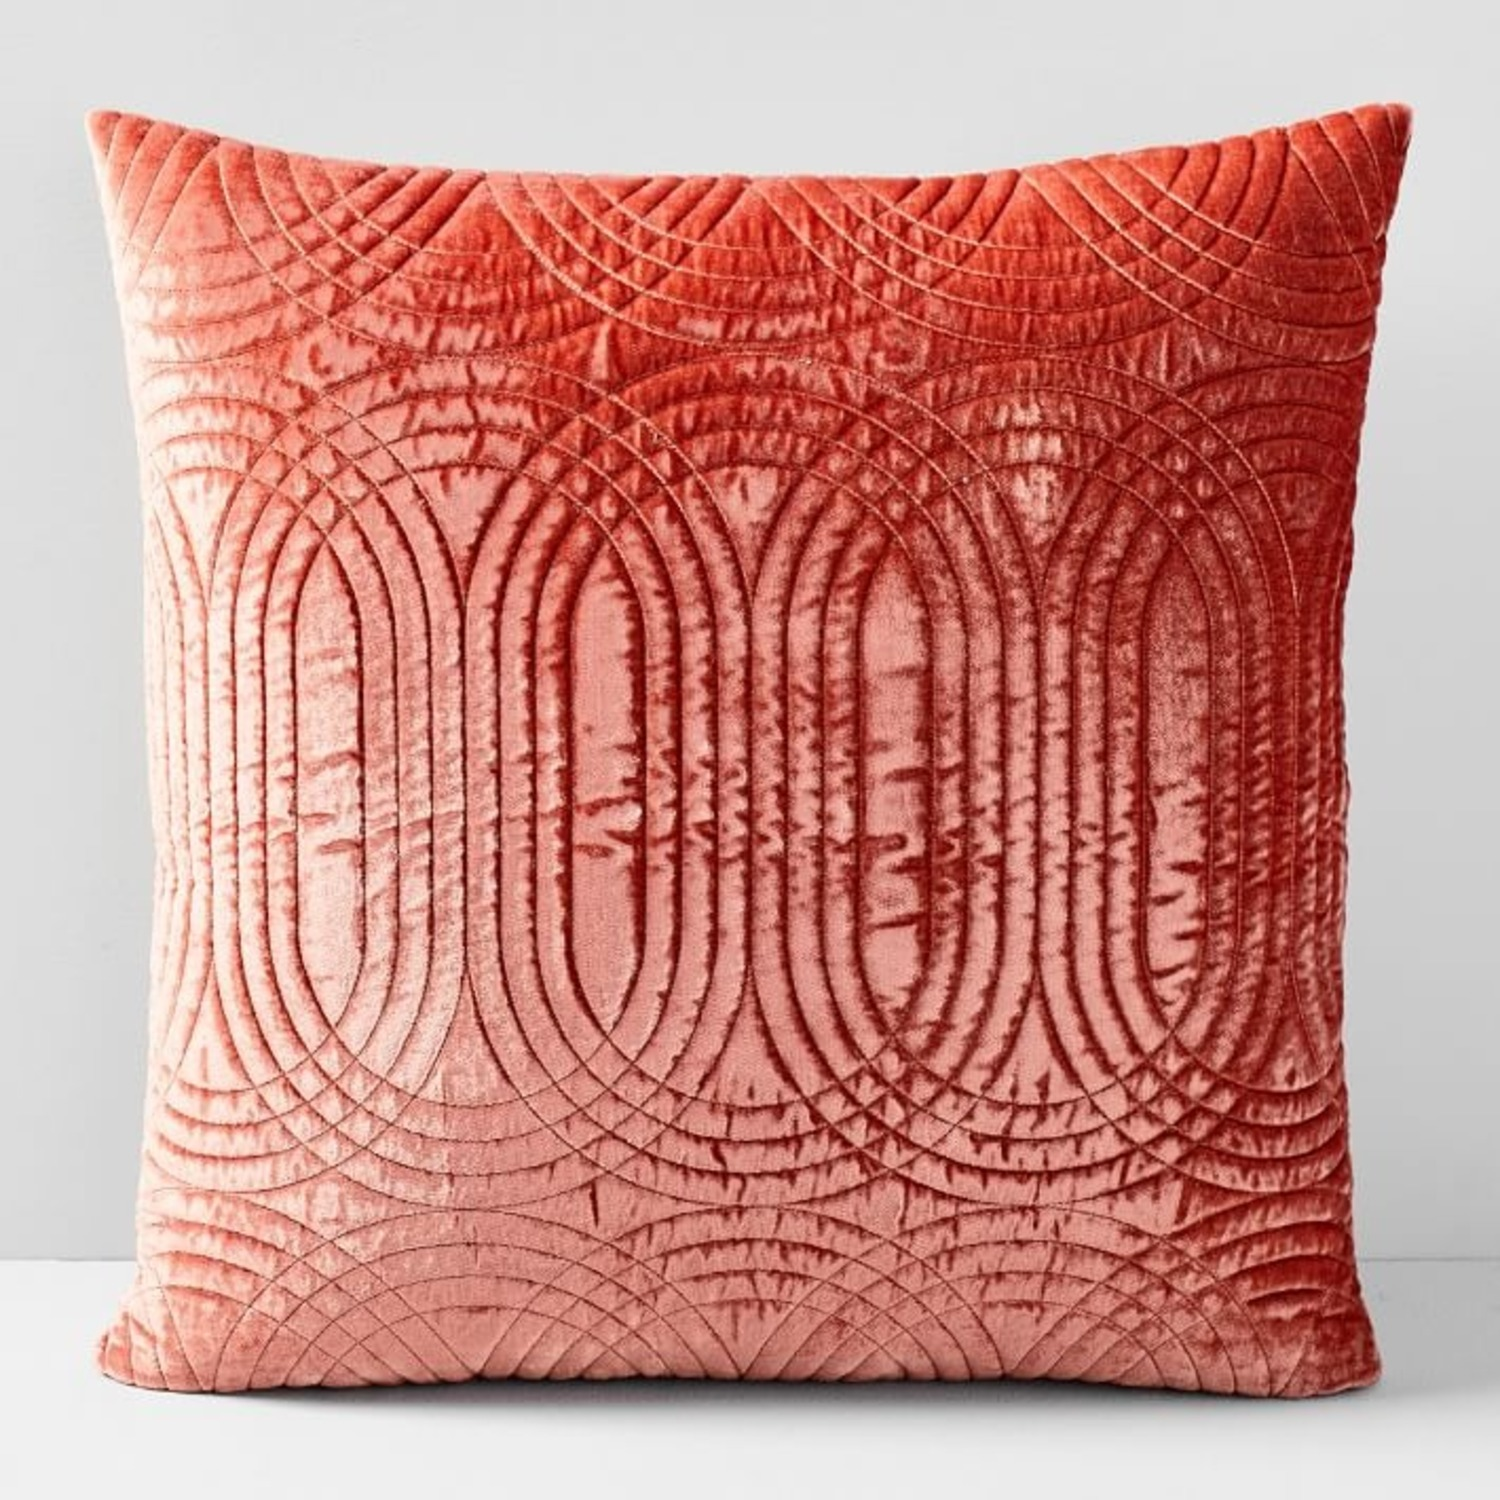 West Elm Lush Velvet Infinity Quilted Pillow - image-1